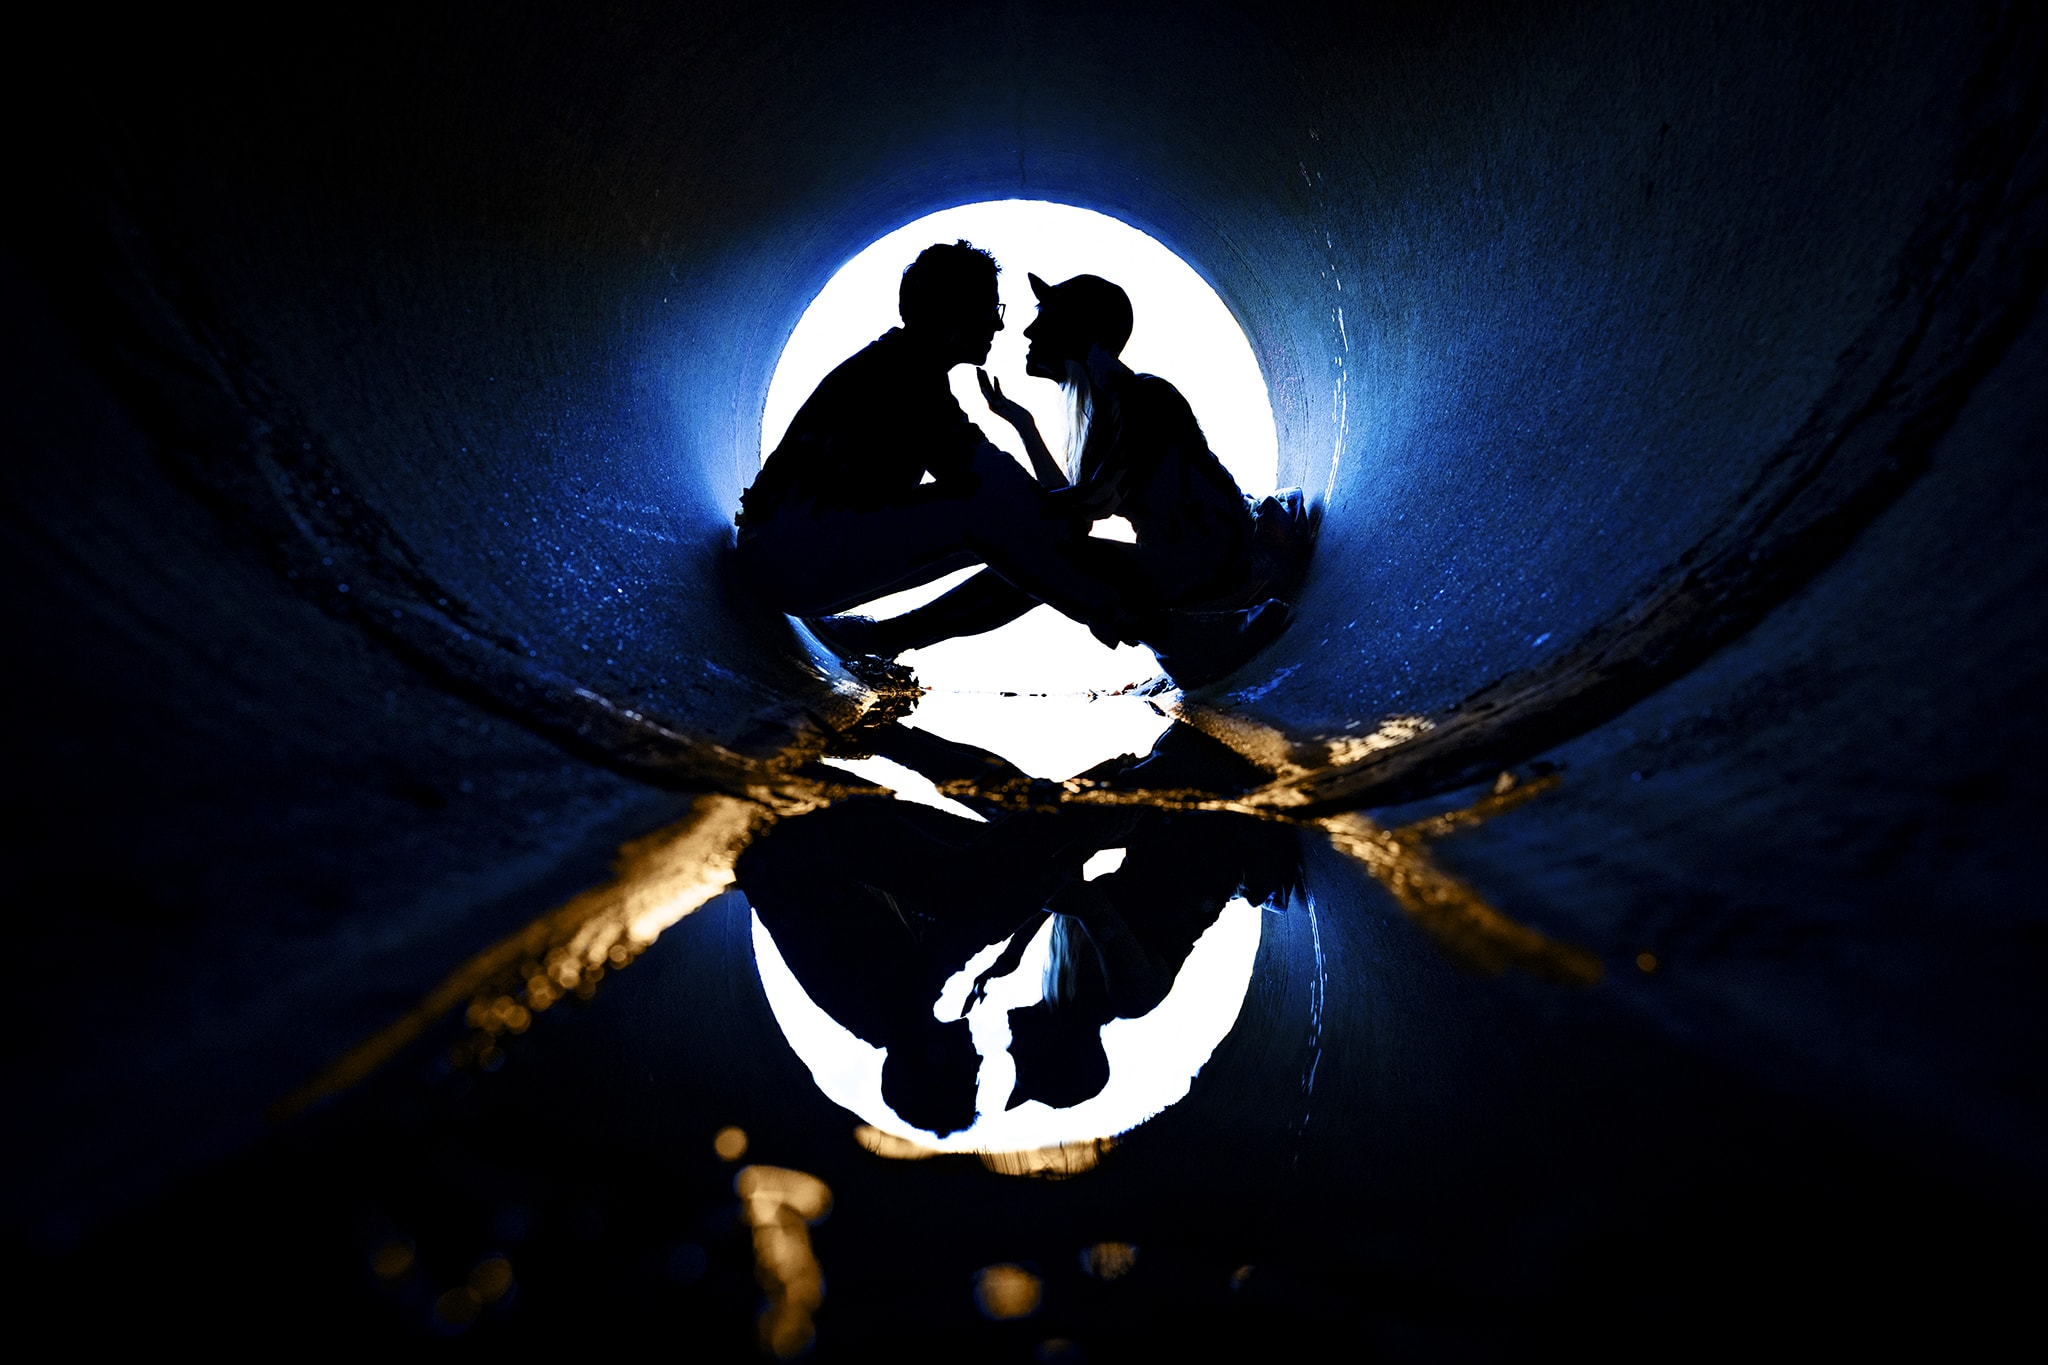 Couple silhouetted and reflected in water